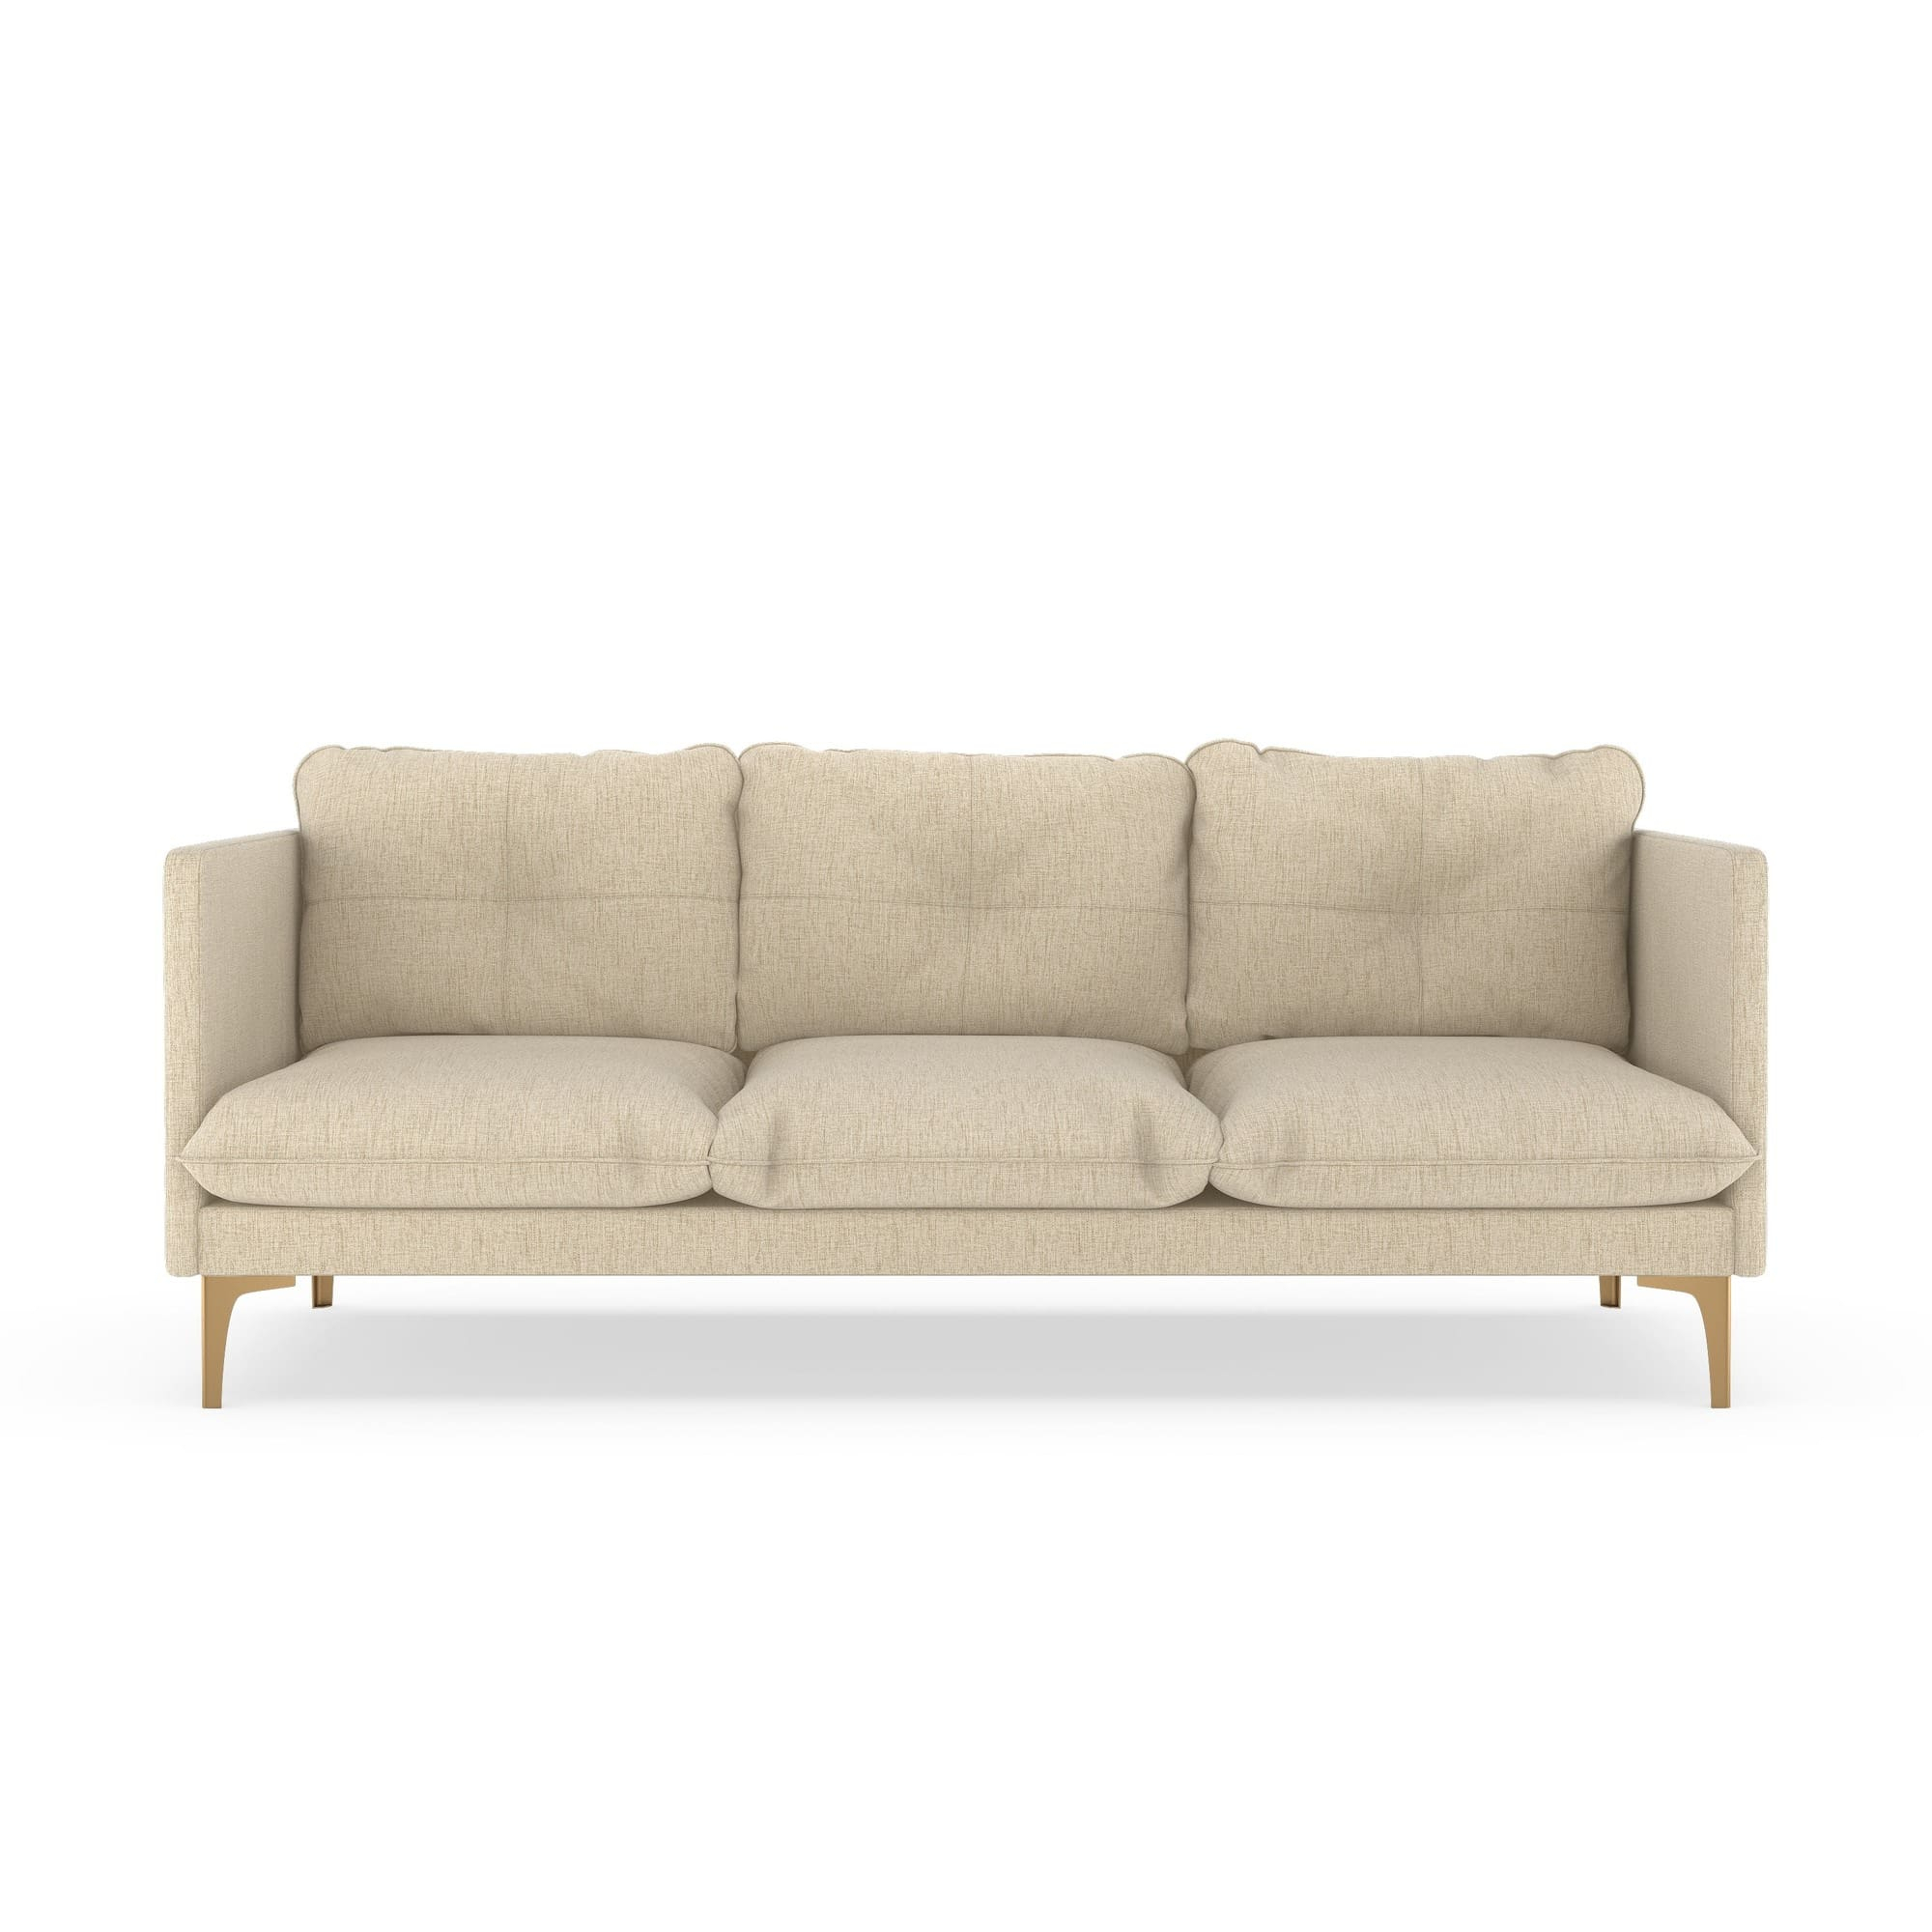 Nye Koncept Rory Seashell Pebble Weave Sofa With Brass Leg & Reviews Pertaining To Rory Sofa Chairs (Image 10 of 25)